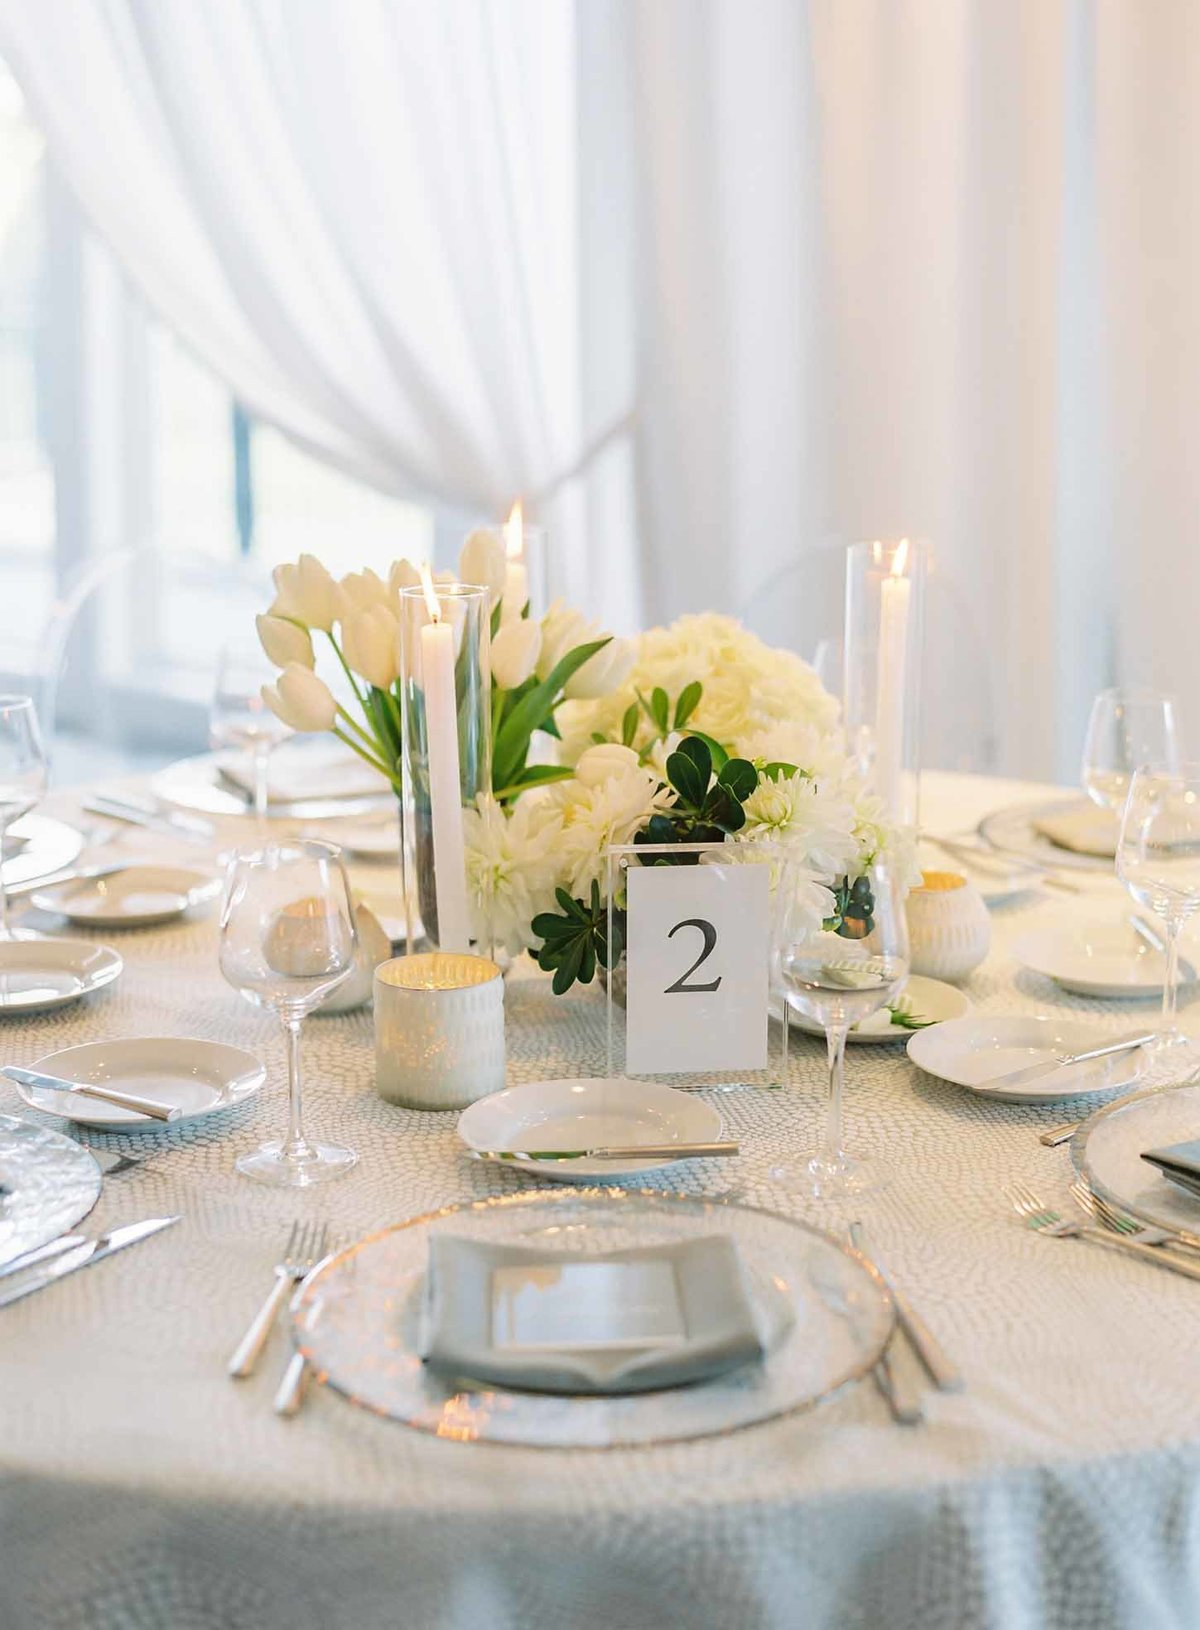 Mono-botanical white floral arrangements of tulips and roses are paired with taper candles on this tablescape.